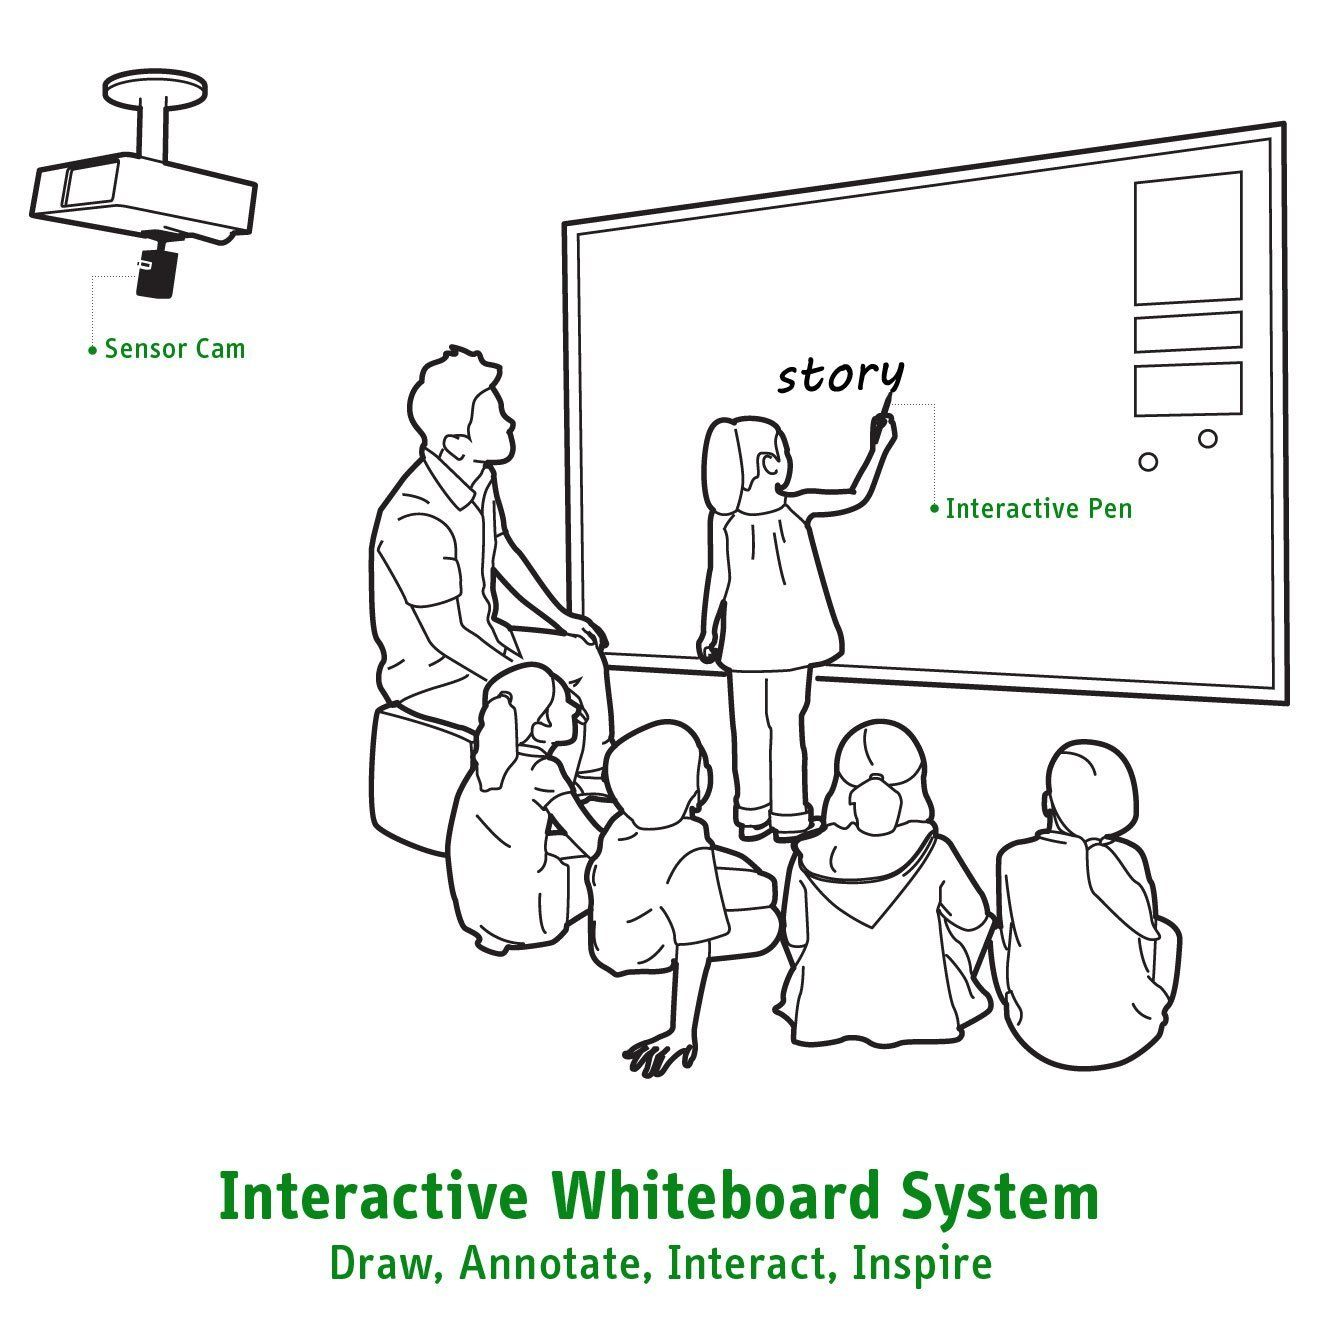 Ipevo 5-866-1-08-00 IS-01 Portable Interactive Whiteboard System